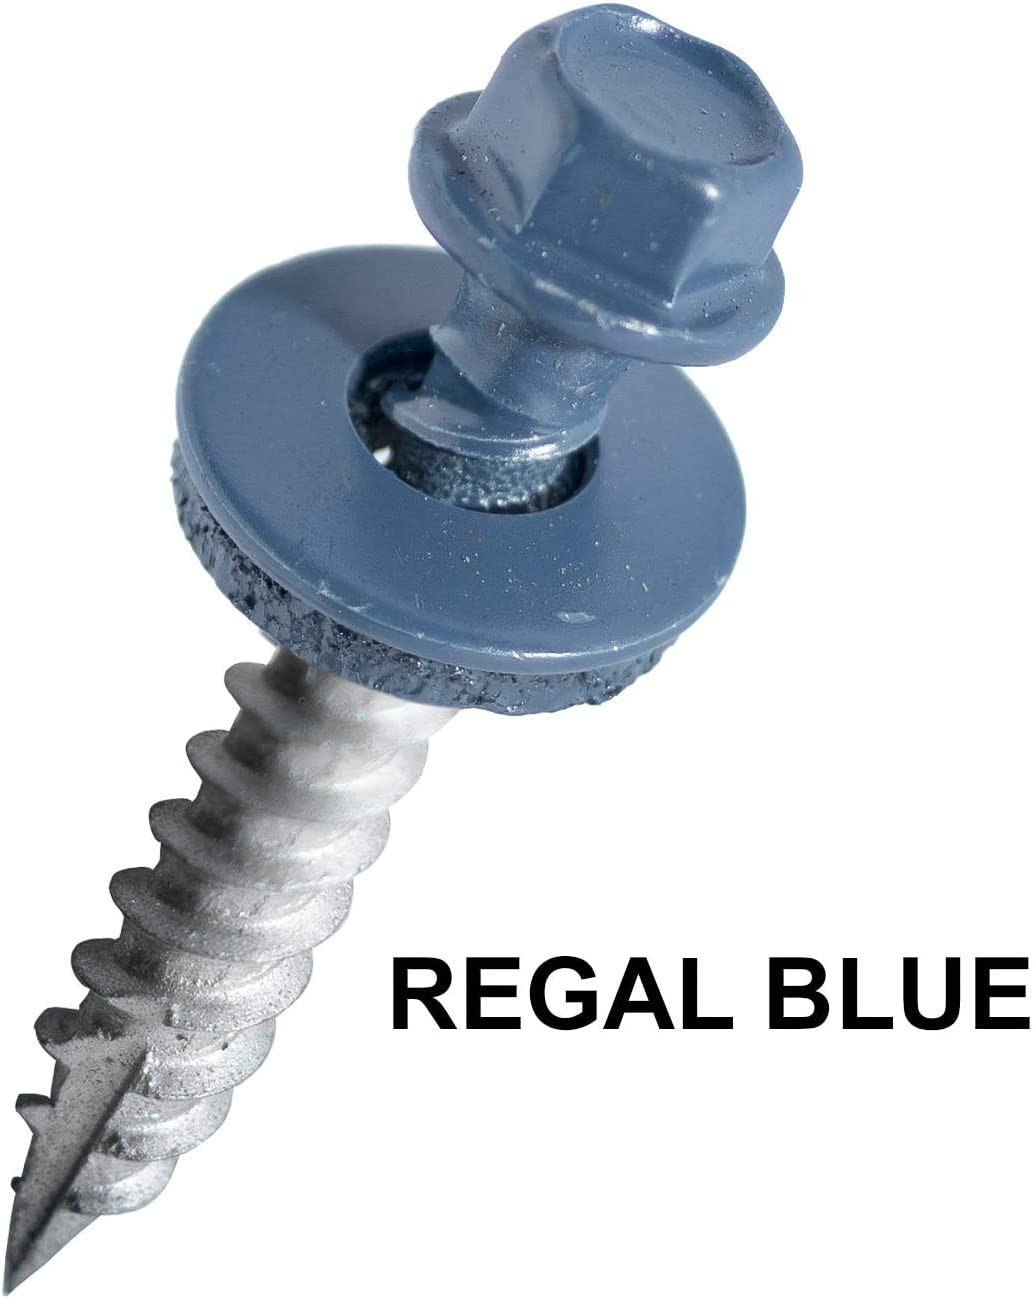 Self Starting//self Tapping Metal to Wood 1.5 Inch, Charcoal EAGLE 1 Metal Roofing Screws Painted Hex Washer Head Sheet Metal Roof Screw Sheet Metal Roofing siding Screws 500 Count